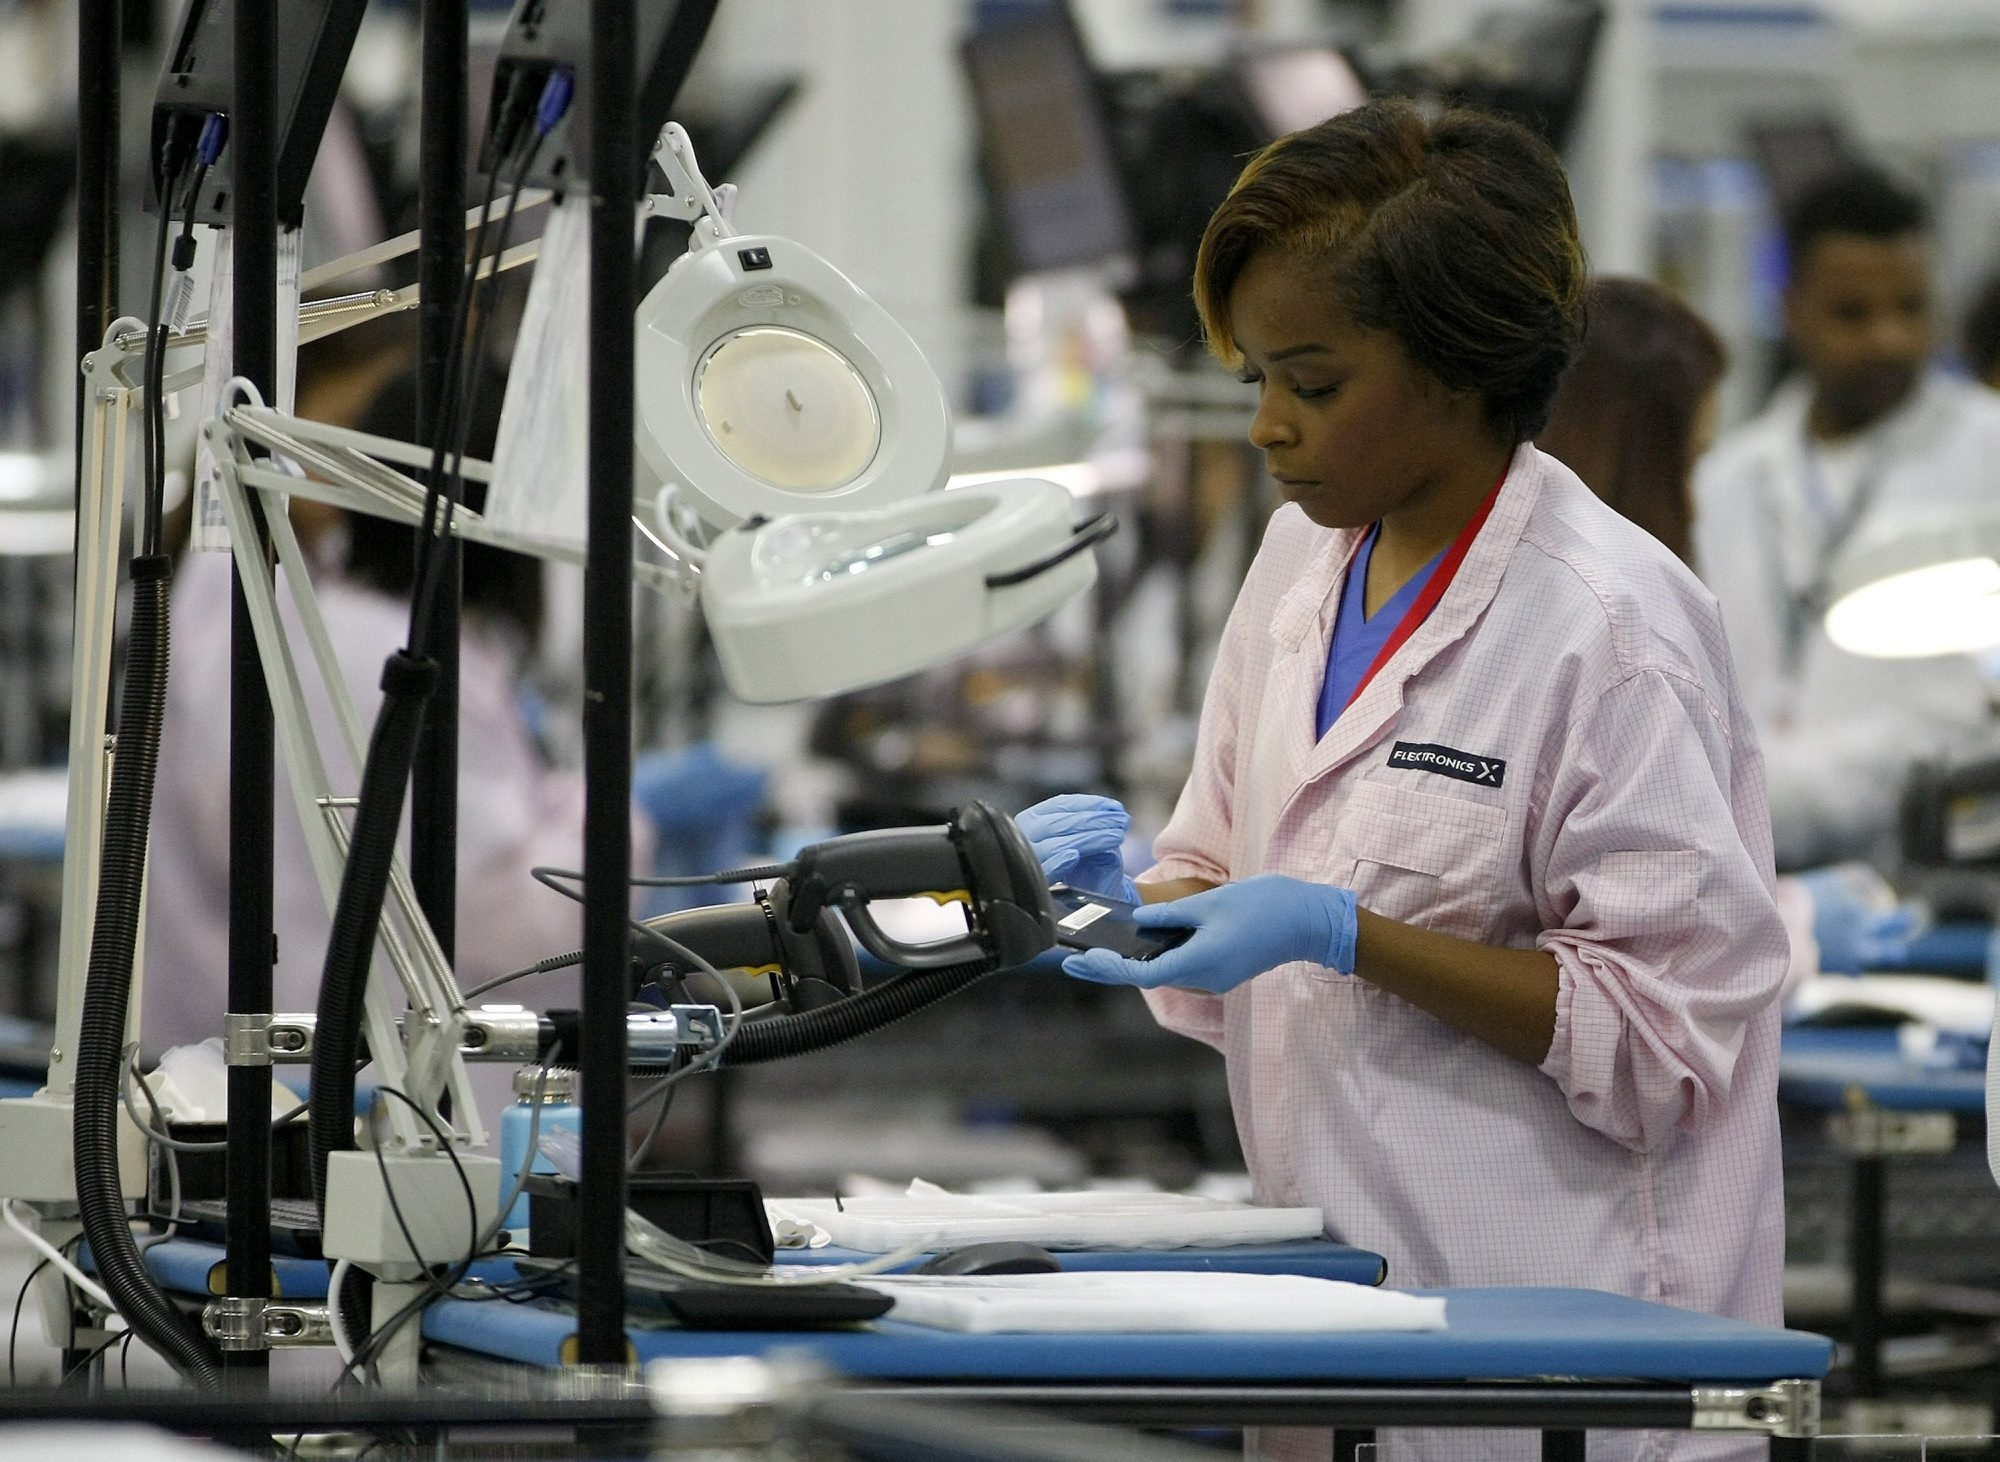 A Moto X phone goes through quality control at Flextronics, a plant making the new phones in Fort Worth, Texas. Google Inc. Chairman Eric Schmidt called the opening of the plant a step toward changing the perception of manufacturing in the U.S.